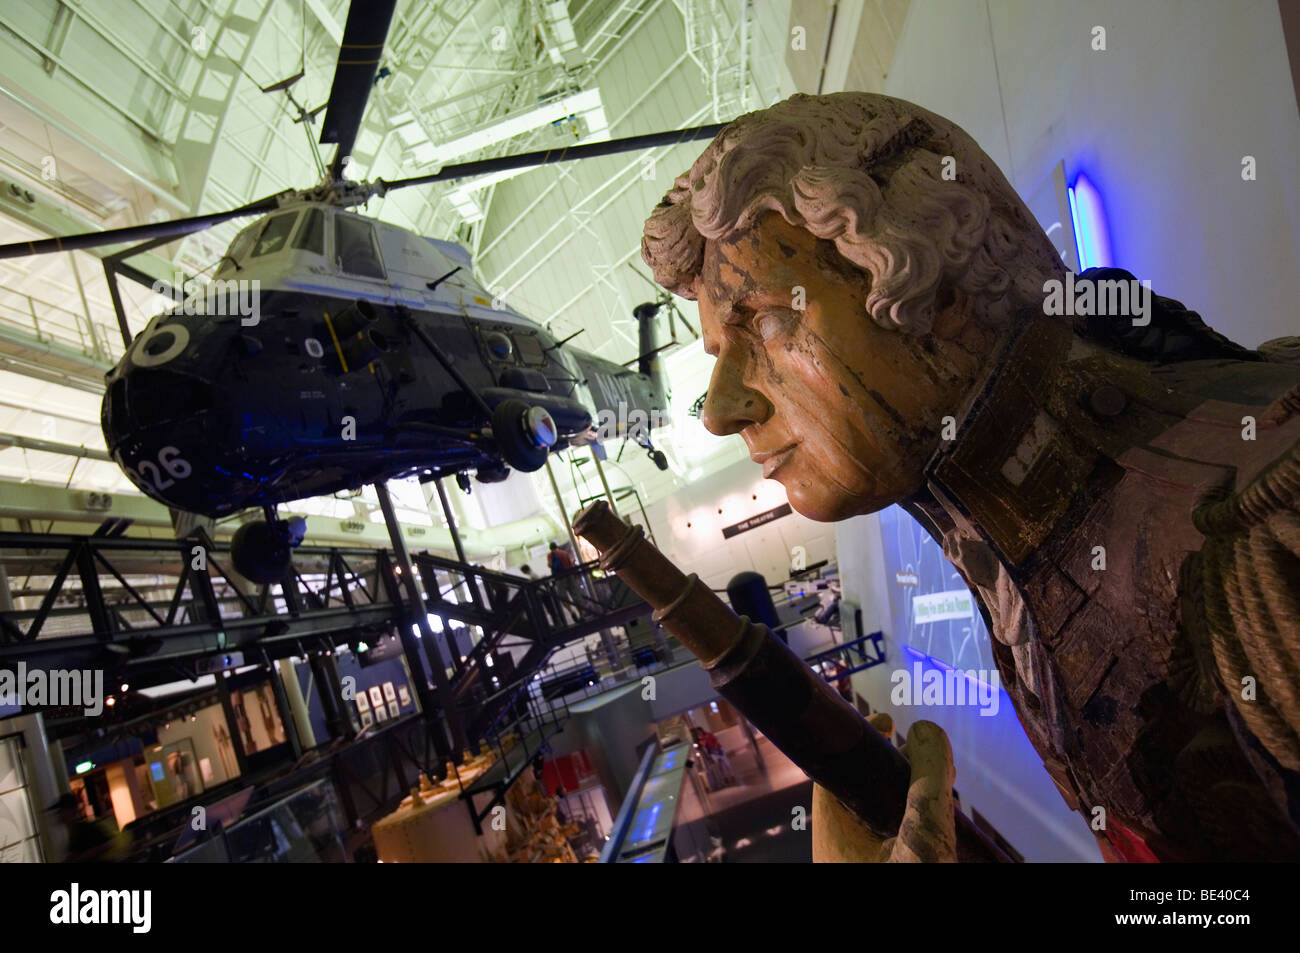 Naval history exhibition in the Australian National Maritime Musuem. Darling Harbour, Sydney, New South Wales, AUSTRALIA - Stock Image